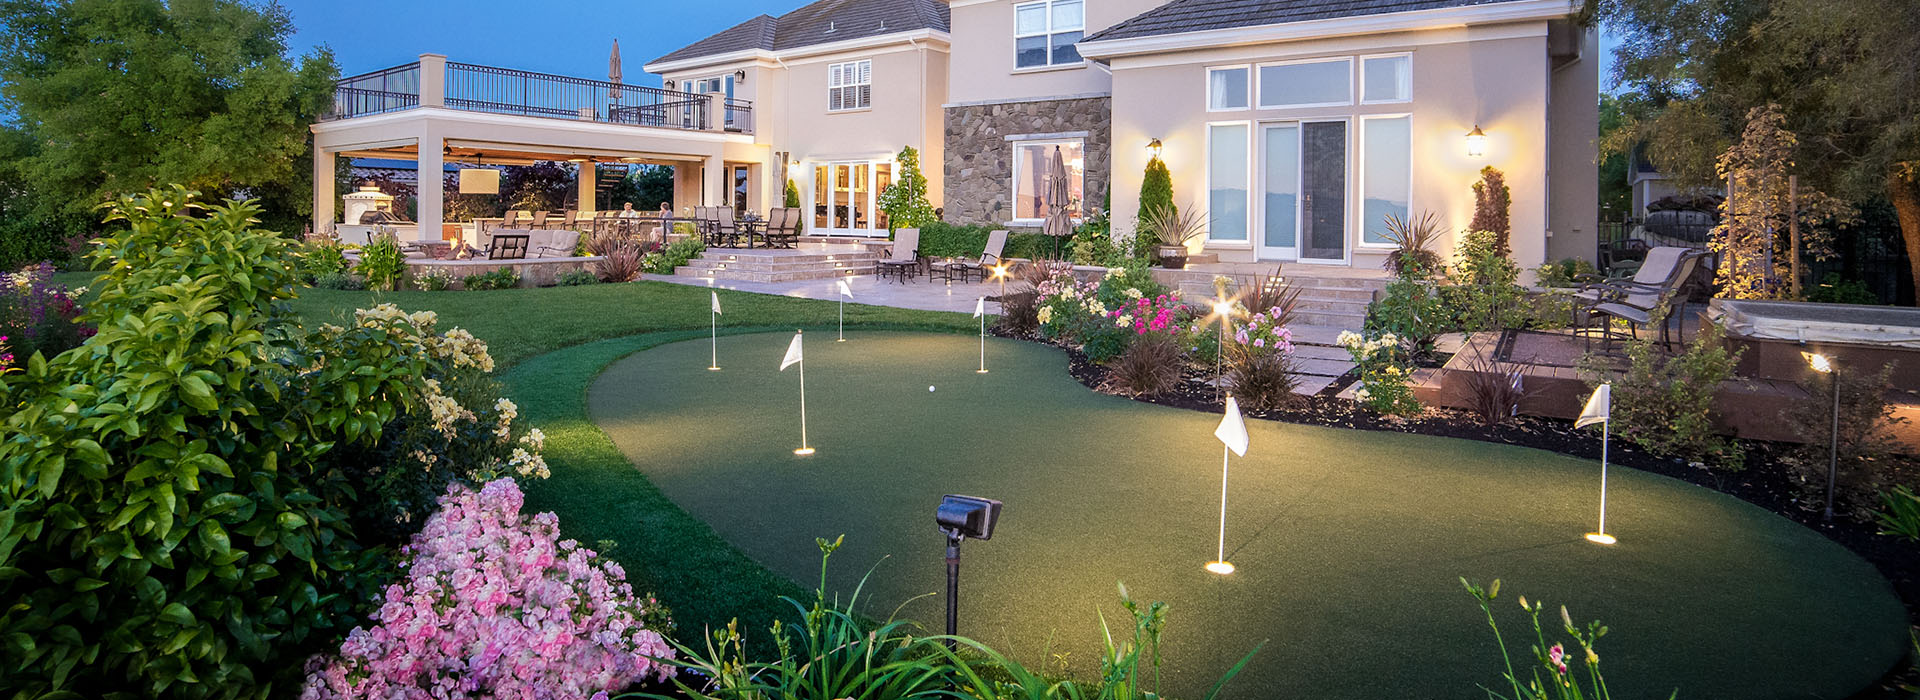 Putting Green Landscape